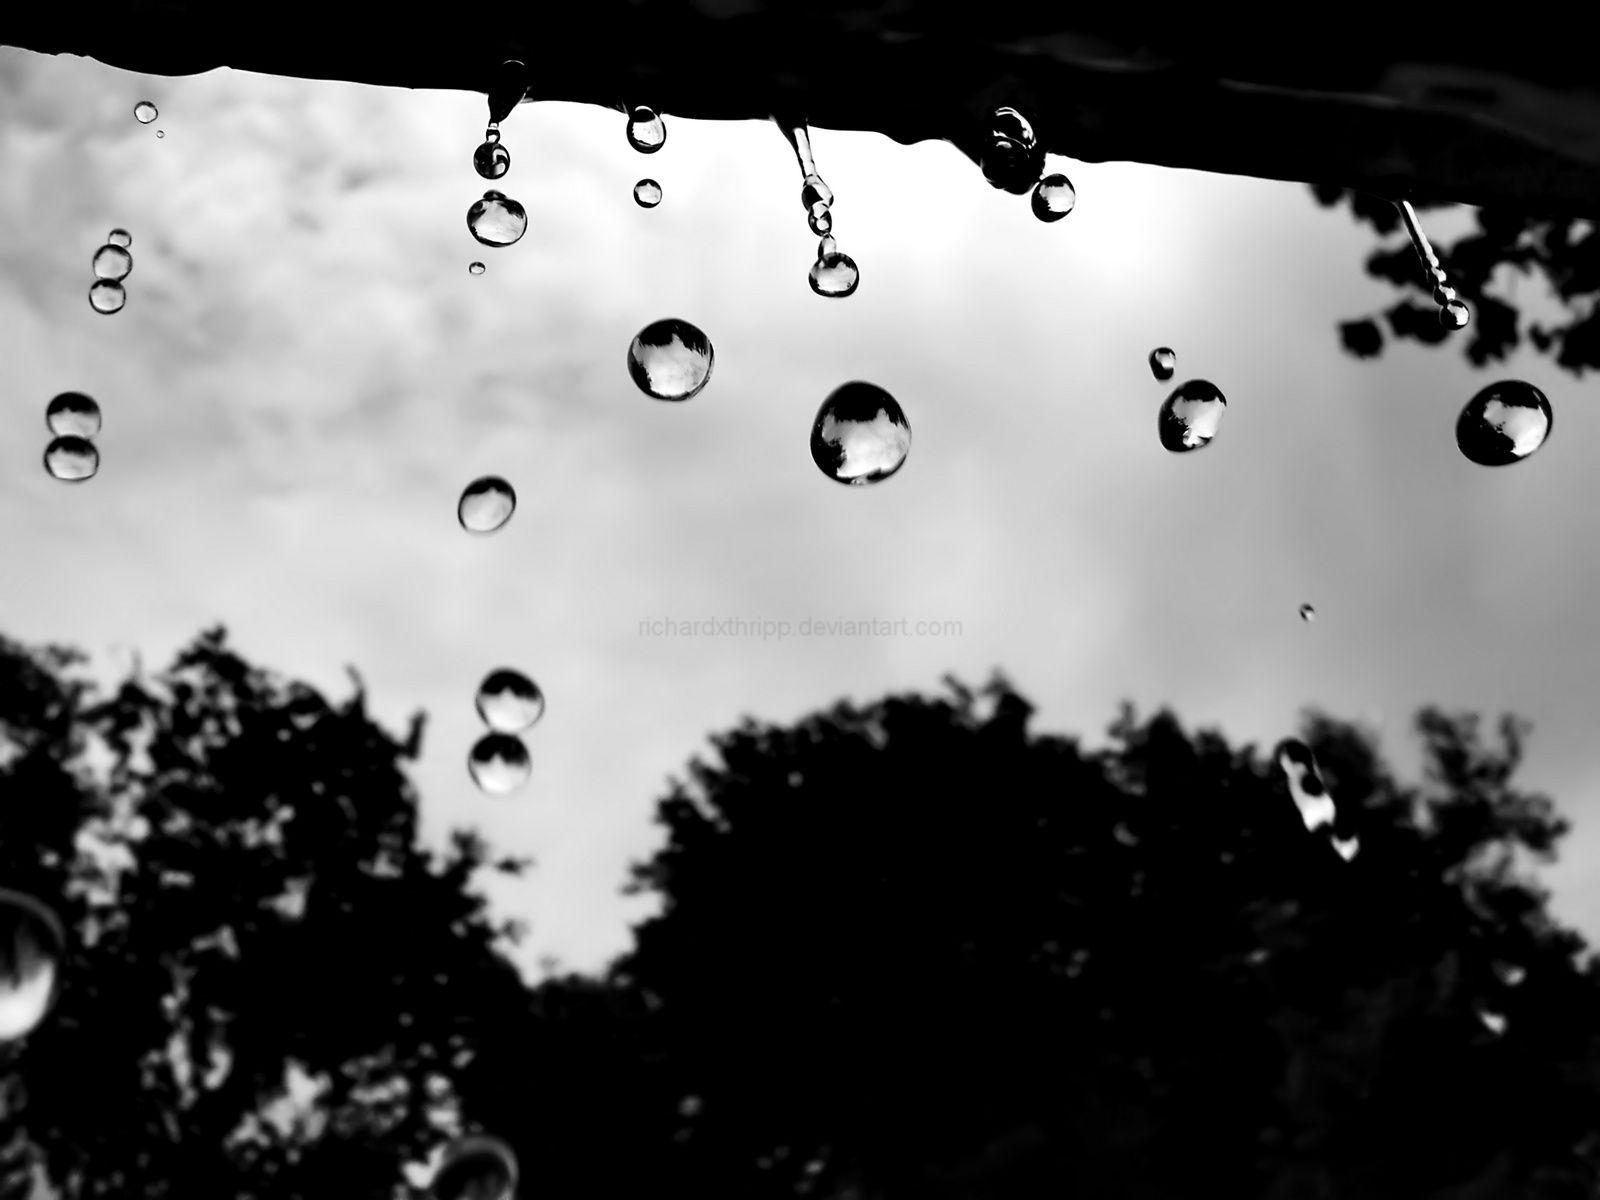 Interesting Rain Drops Wallpapers By Richardxthripp On Deviantart Throughout Decorating Ideas